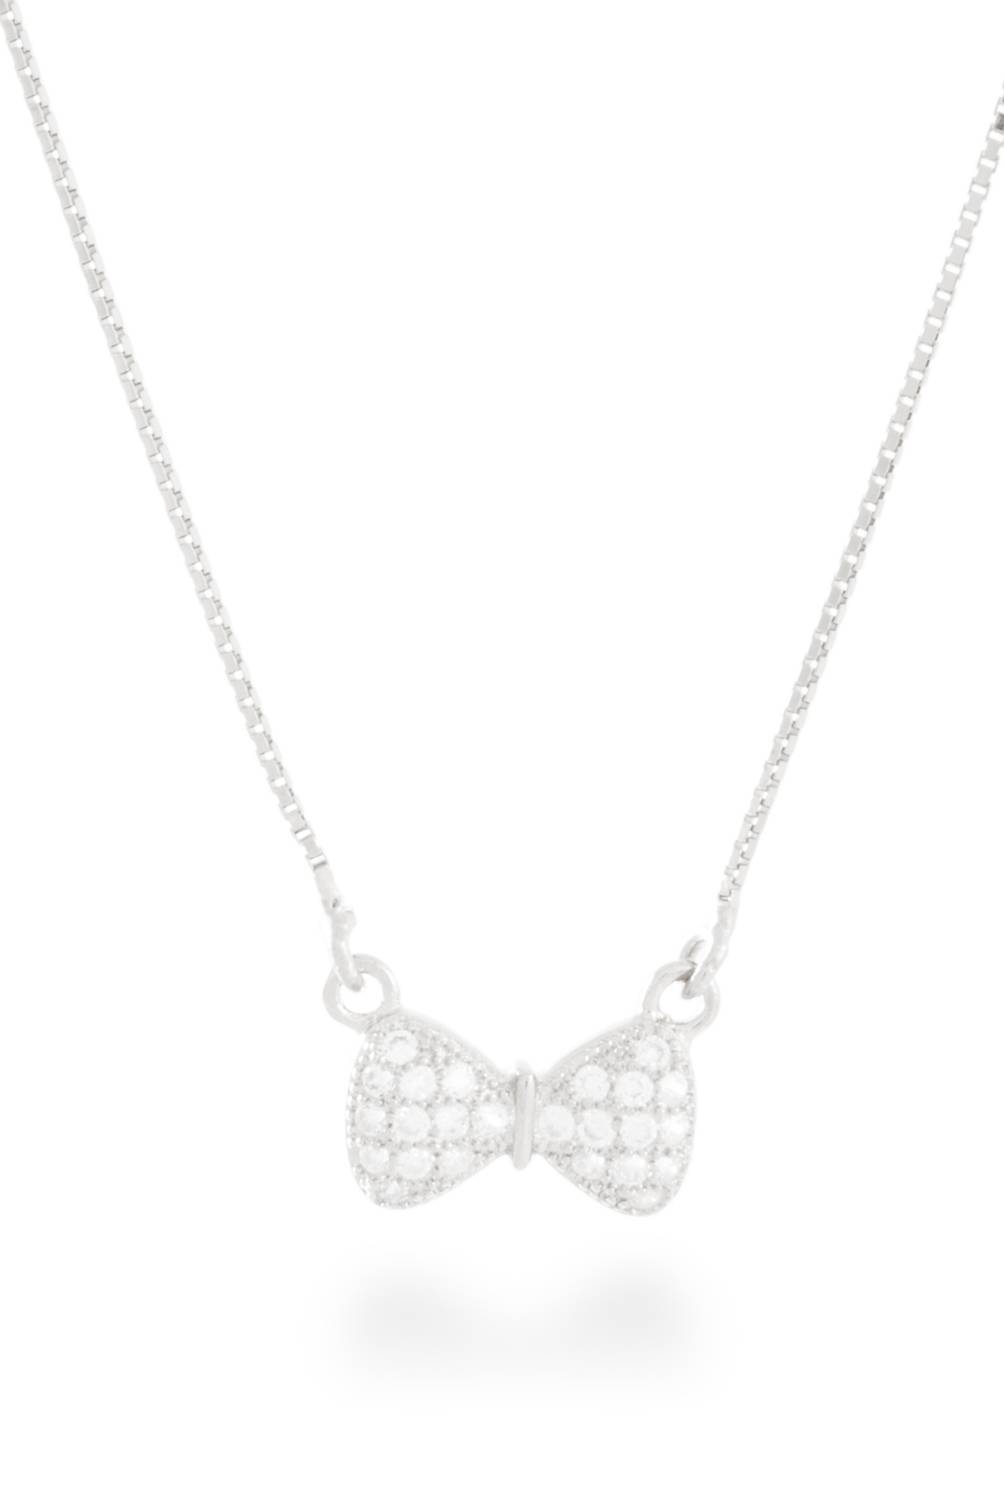 Luxenter - Collar Luxenter Obadele PH00300